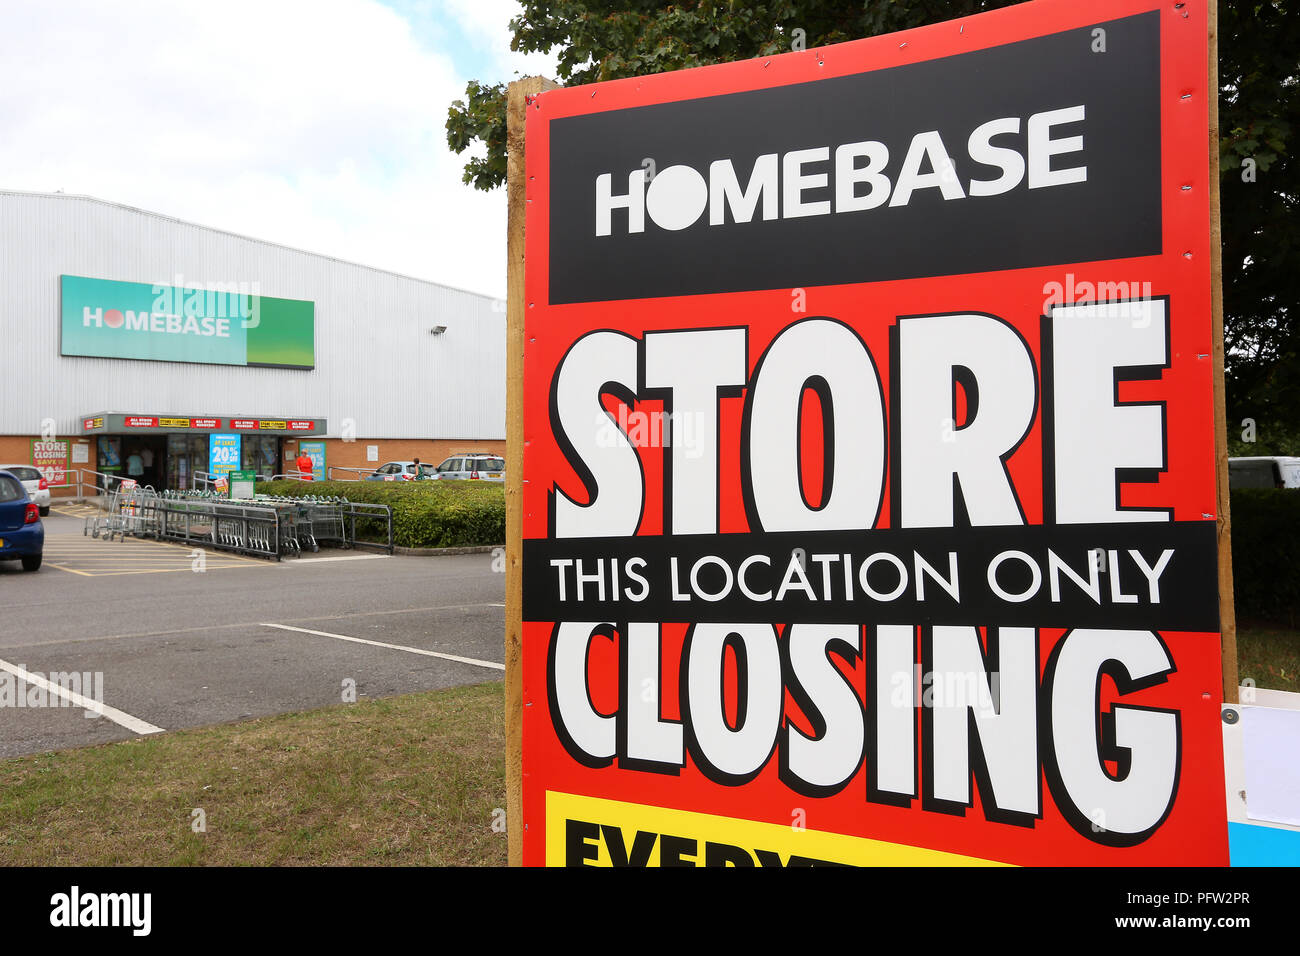 General view of a Homebase store in Exeter which is closing down. Homebase is a DIY/ Garden Centre and was bought by the Austrailian conglomerate Wesf - Stock Image